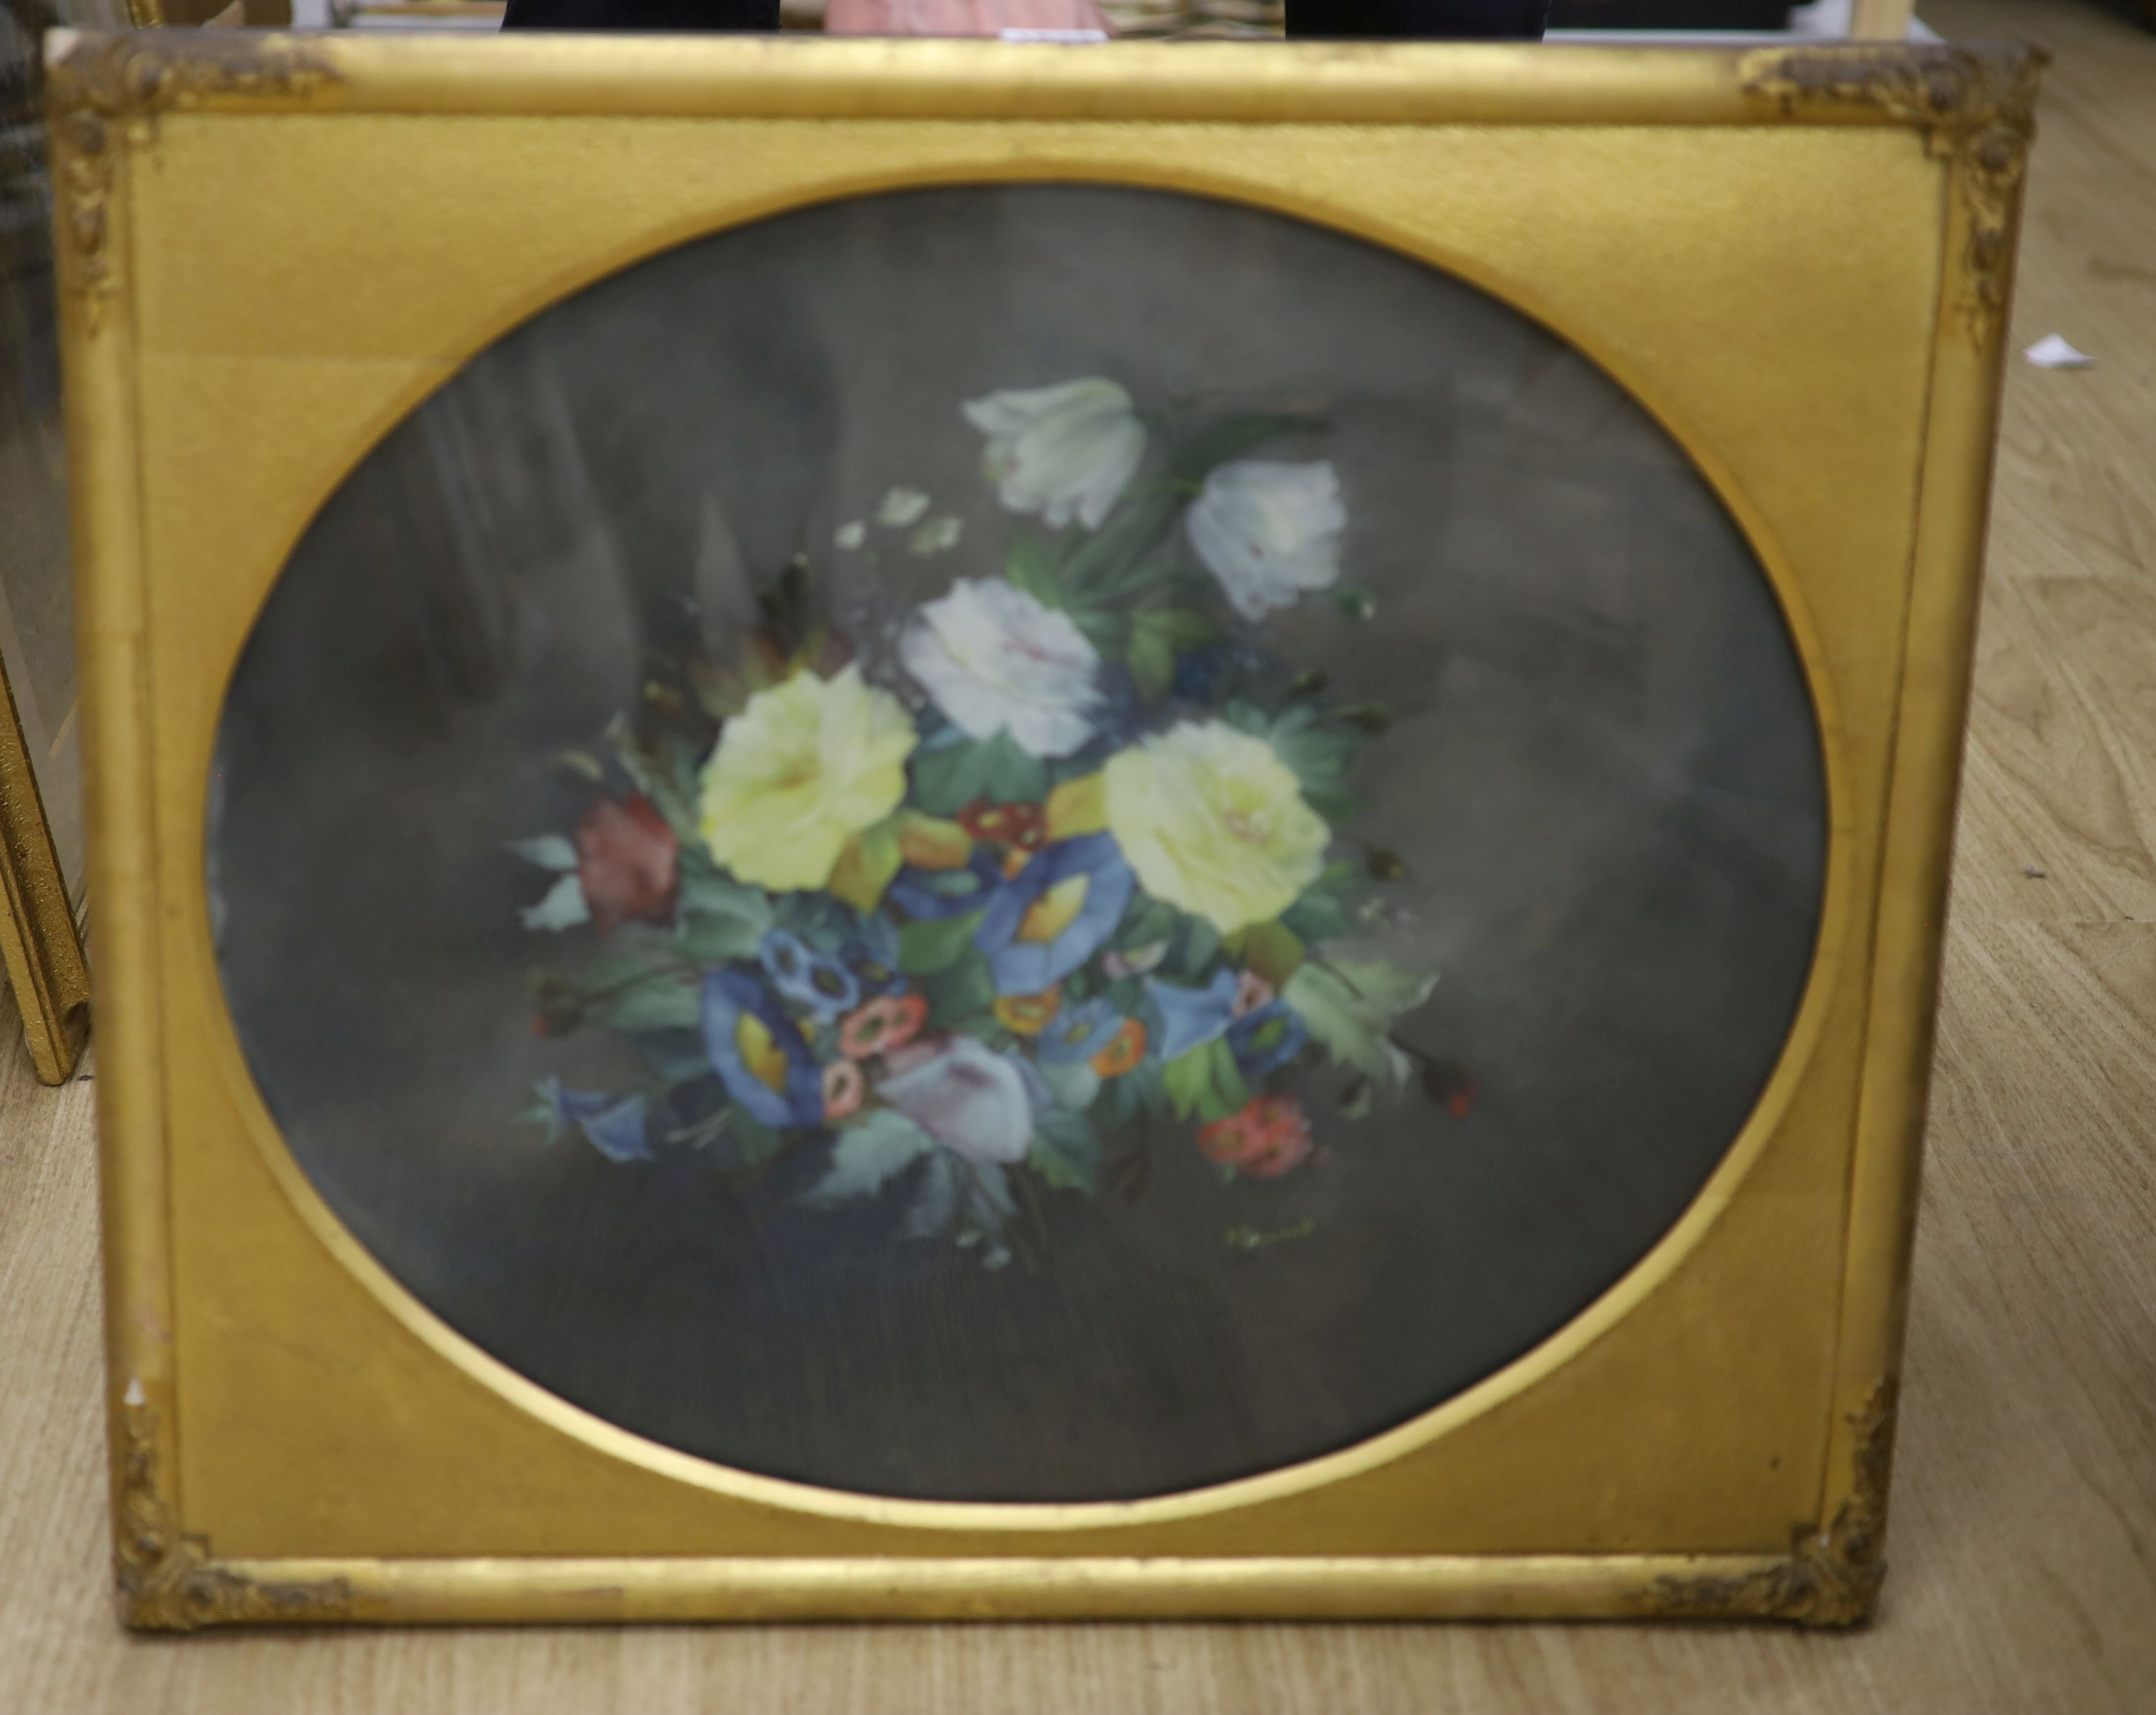 William Rayworth (19th/20th century), oil on opaque glass, 'Still life study of mixed flowers', - Image 3 of 4